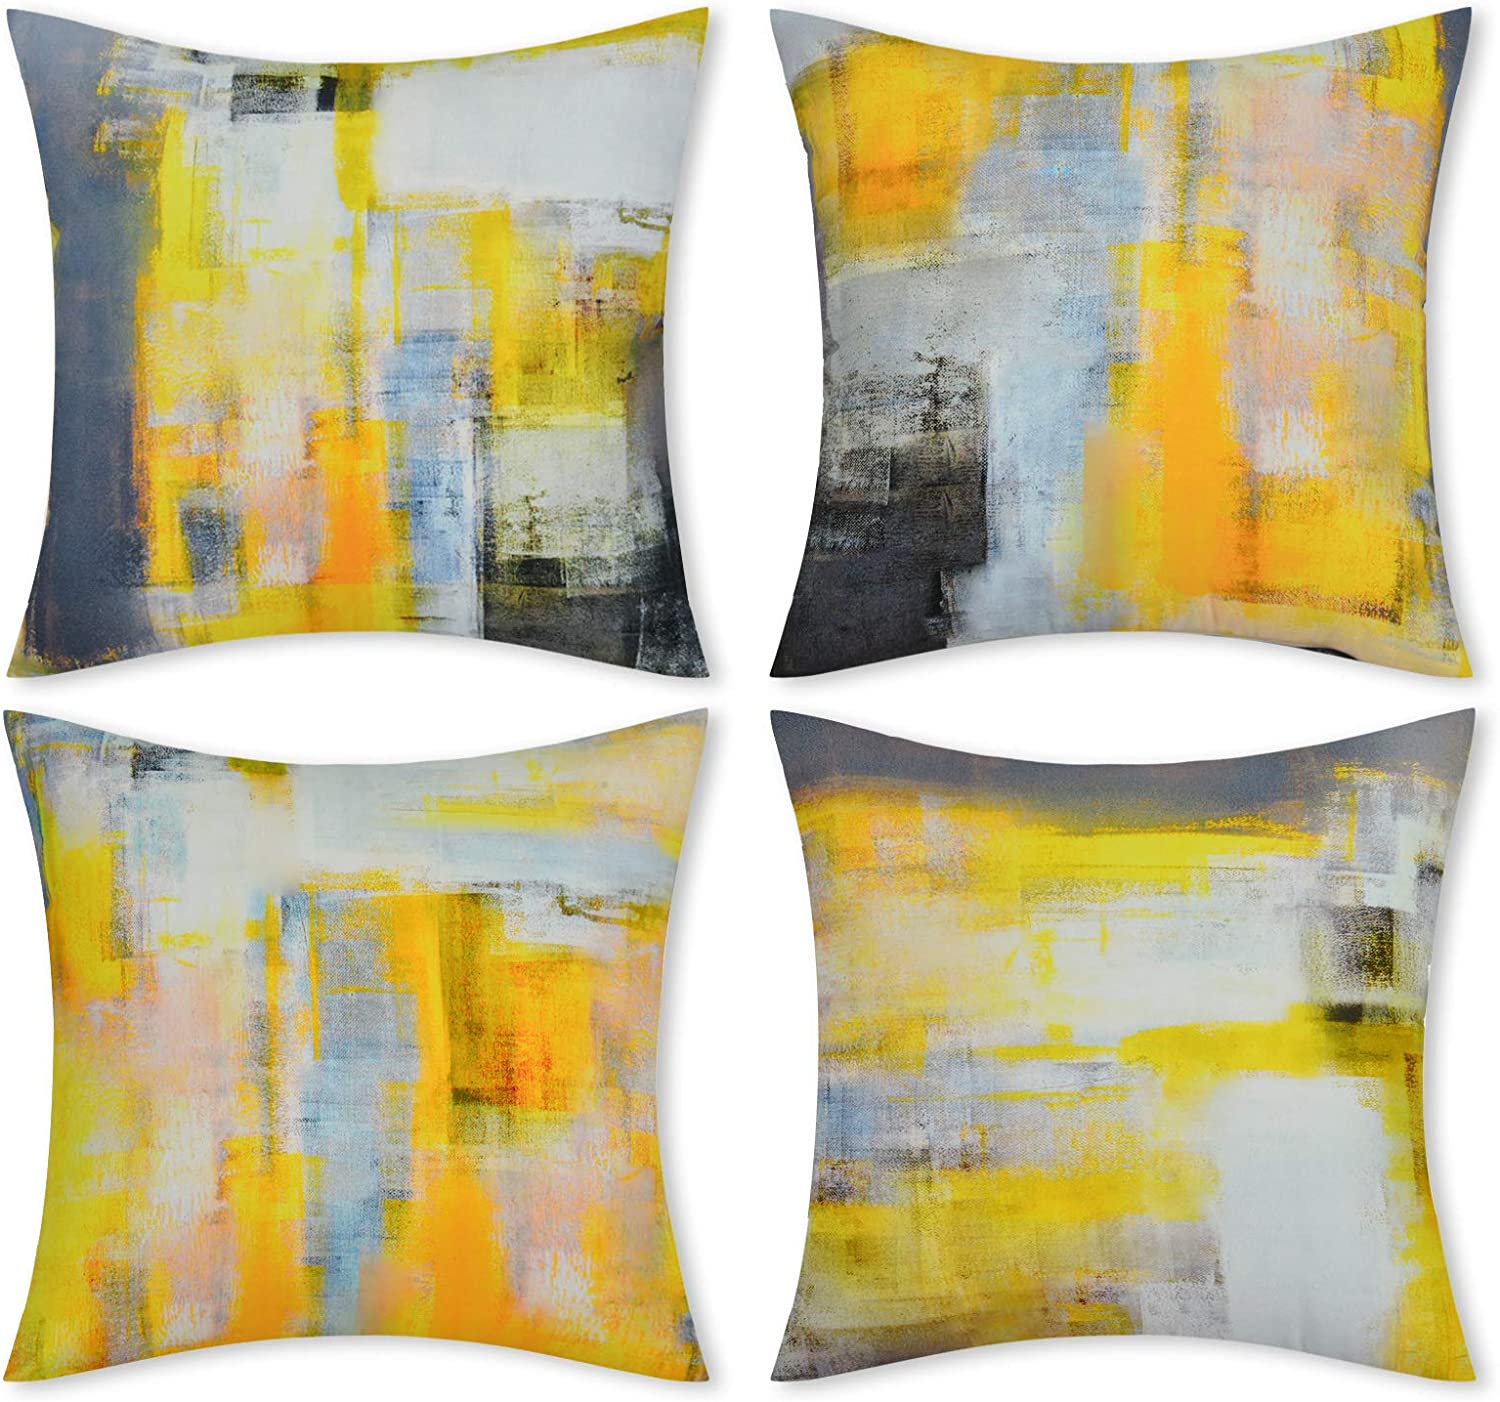 Yastouay Yellow Decorative Throw Pillow Covers Set of 4 Yellow Grey Pillow Cases Modern Accent Home Decor Cushion Covers for Couch Living Room Sofa Bed, 18 x 18 inch